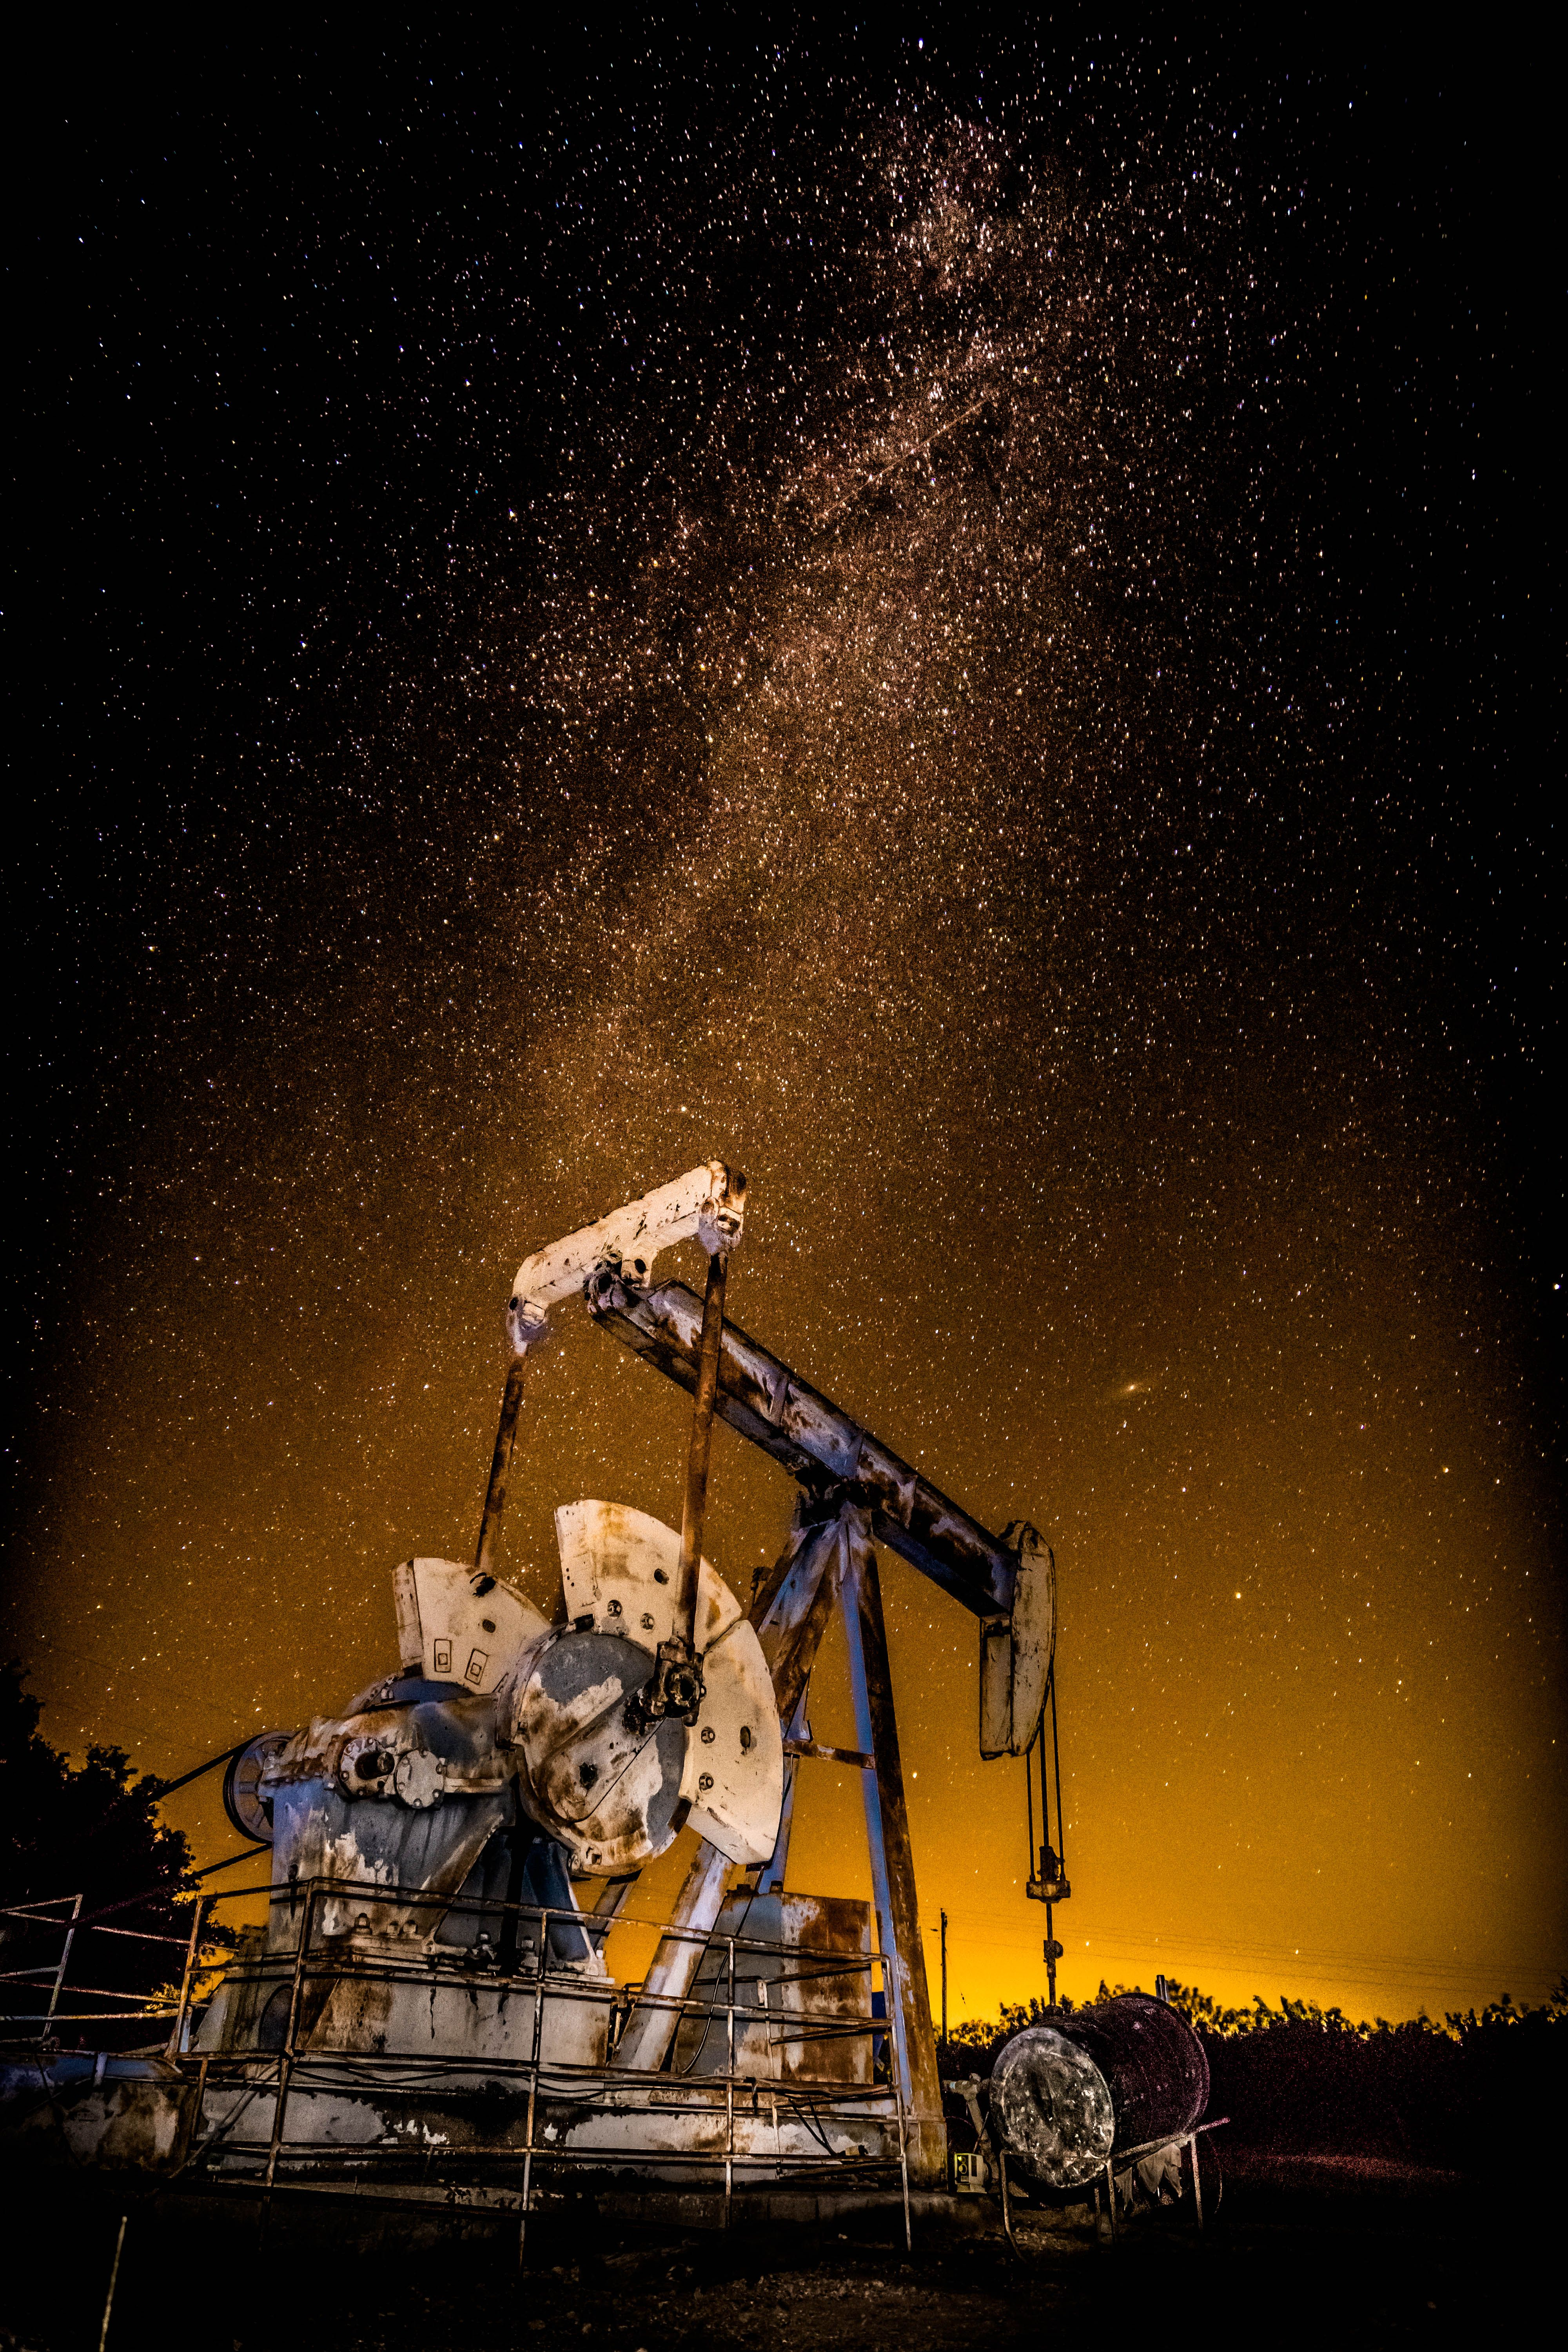 Pumpjack West Texas style! Industrial photography